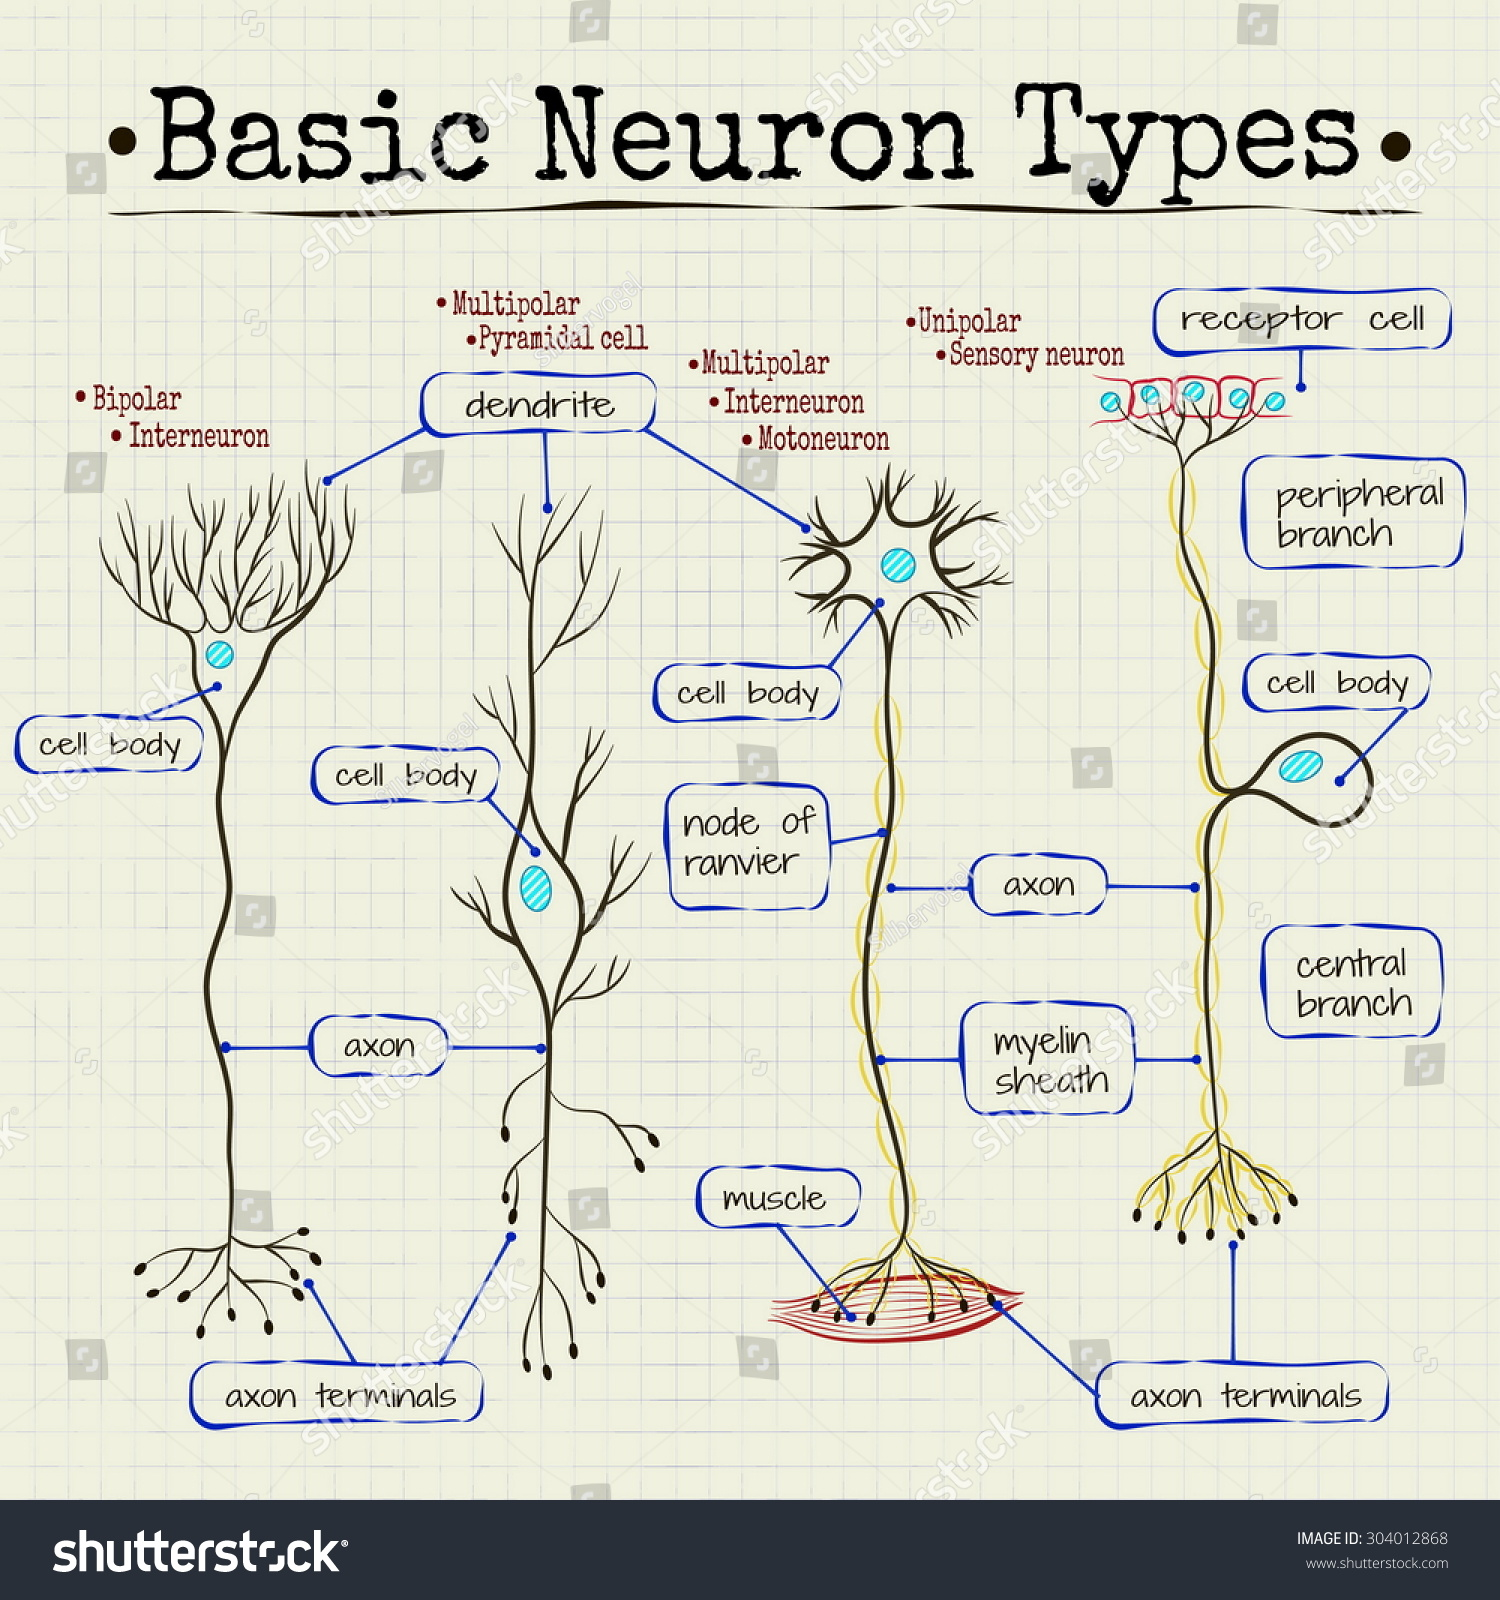 Vector drawing basic types neurons stock vector 304012868 shutterstock vector drawing of the basic types of neurons ccuart Gallery